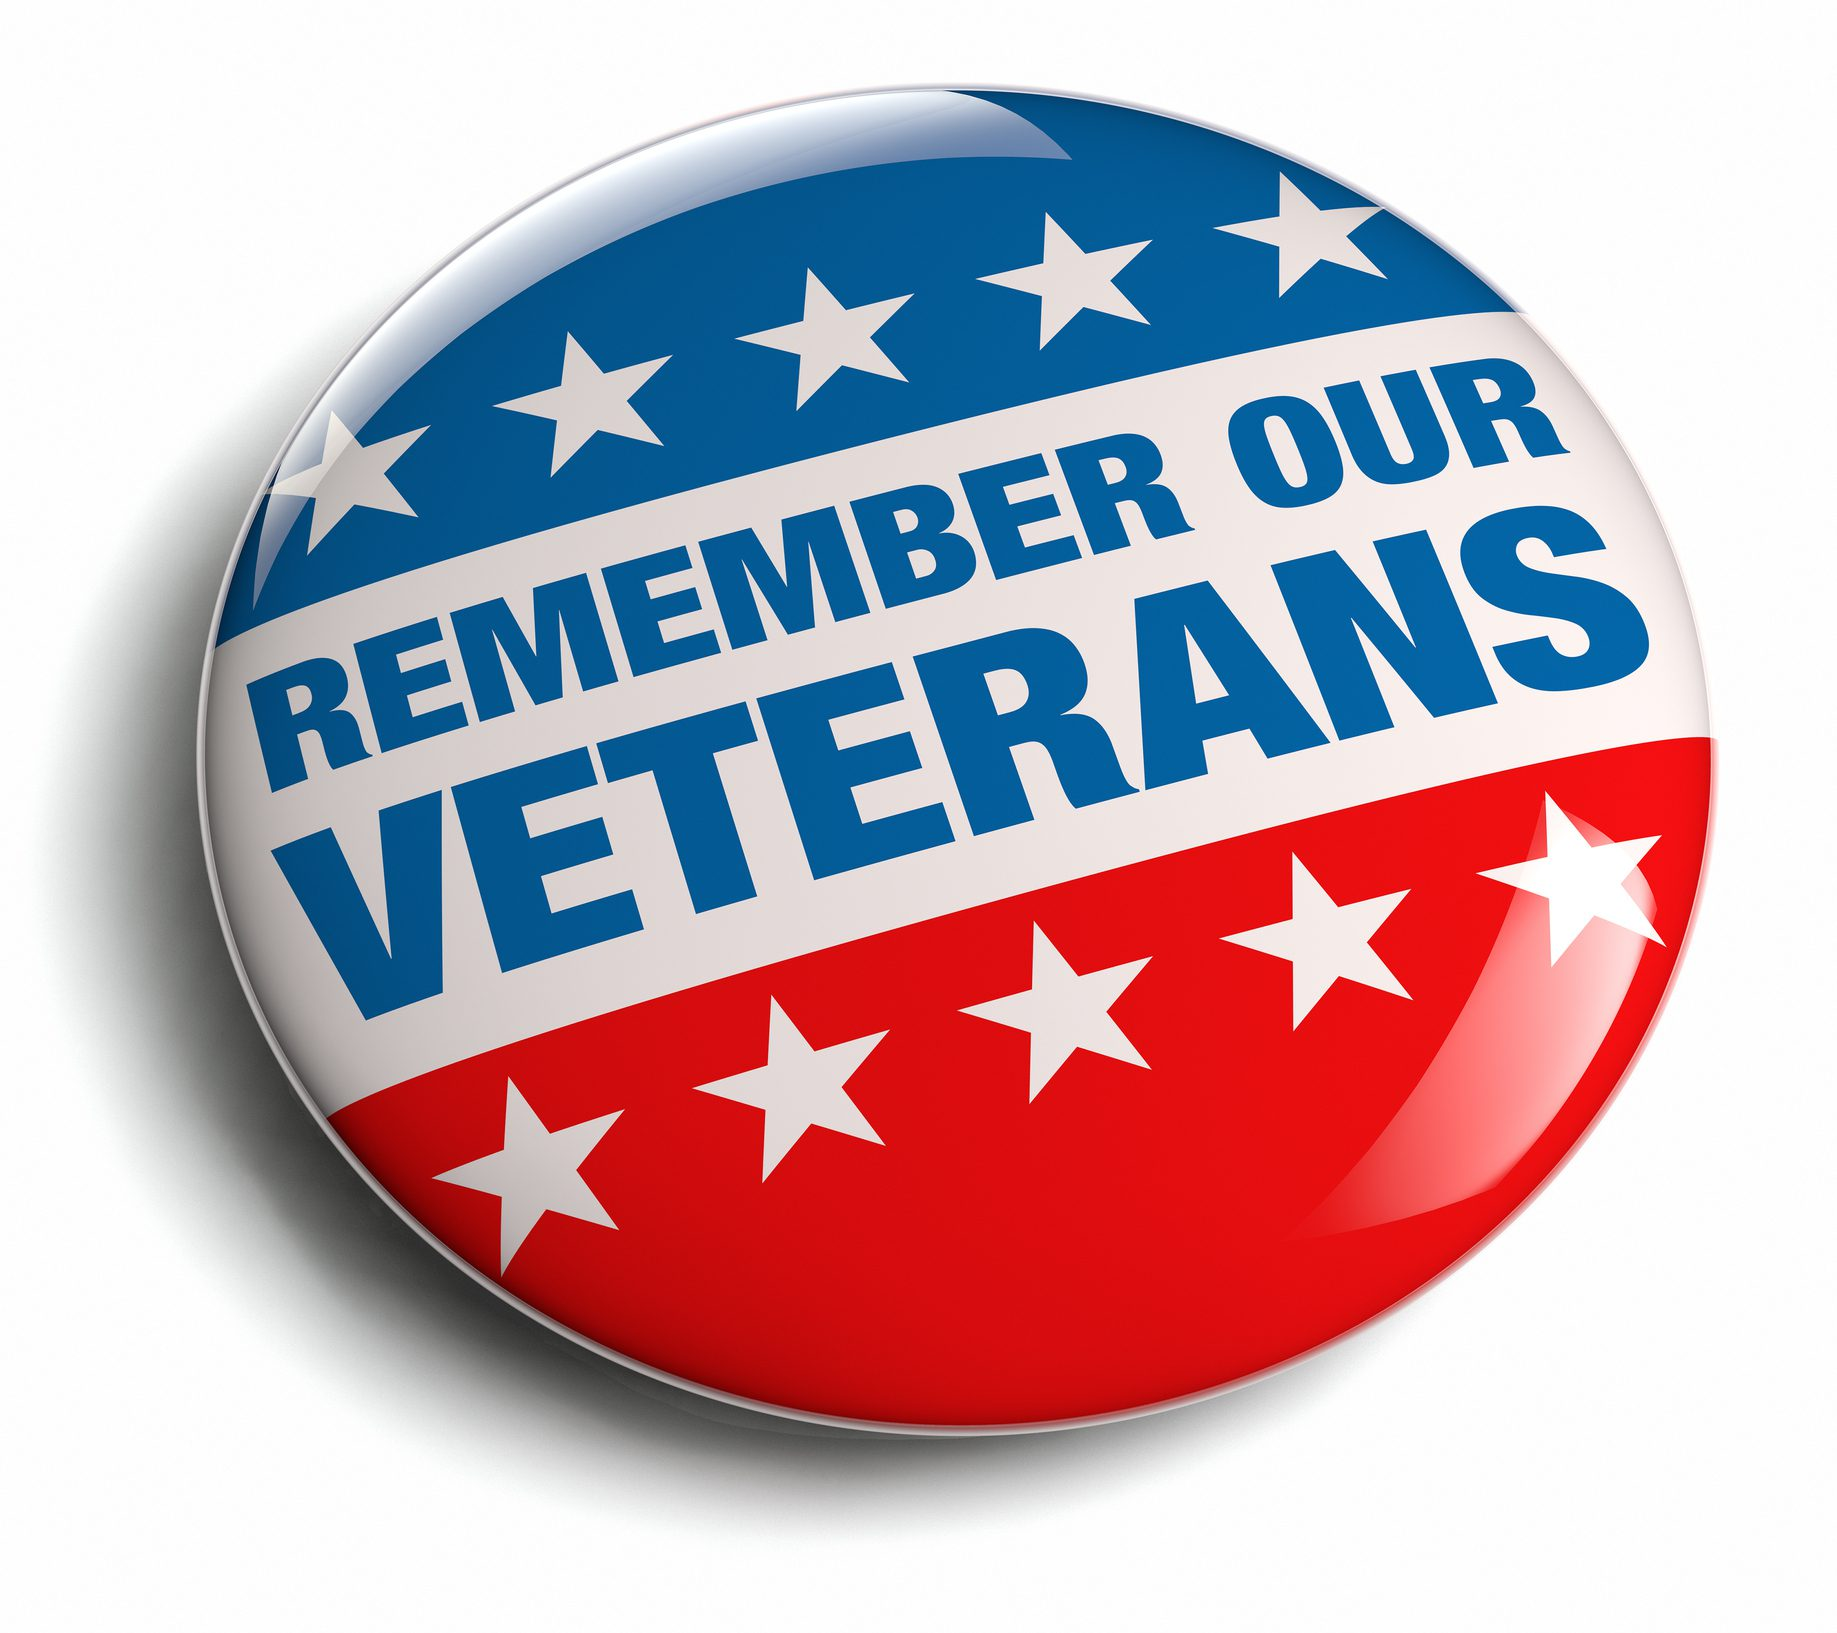 Remember Our Veterans - Veterans Day stock image